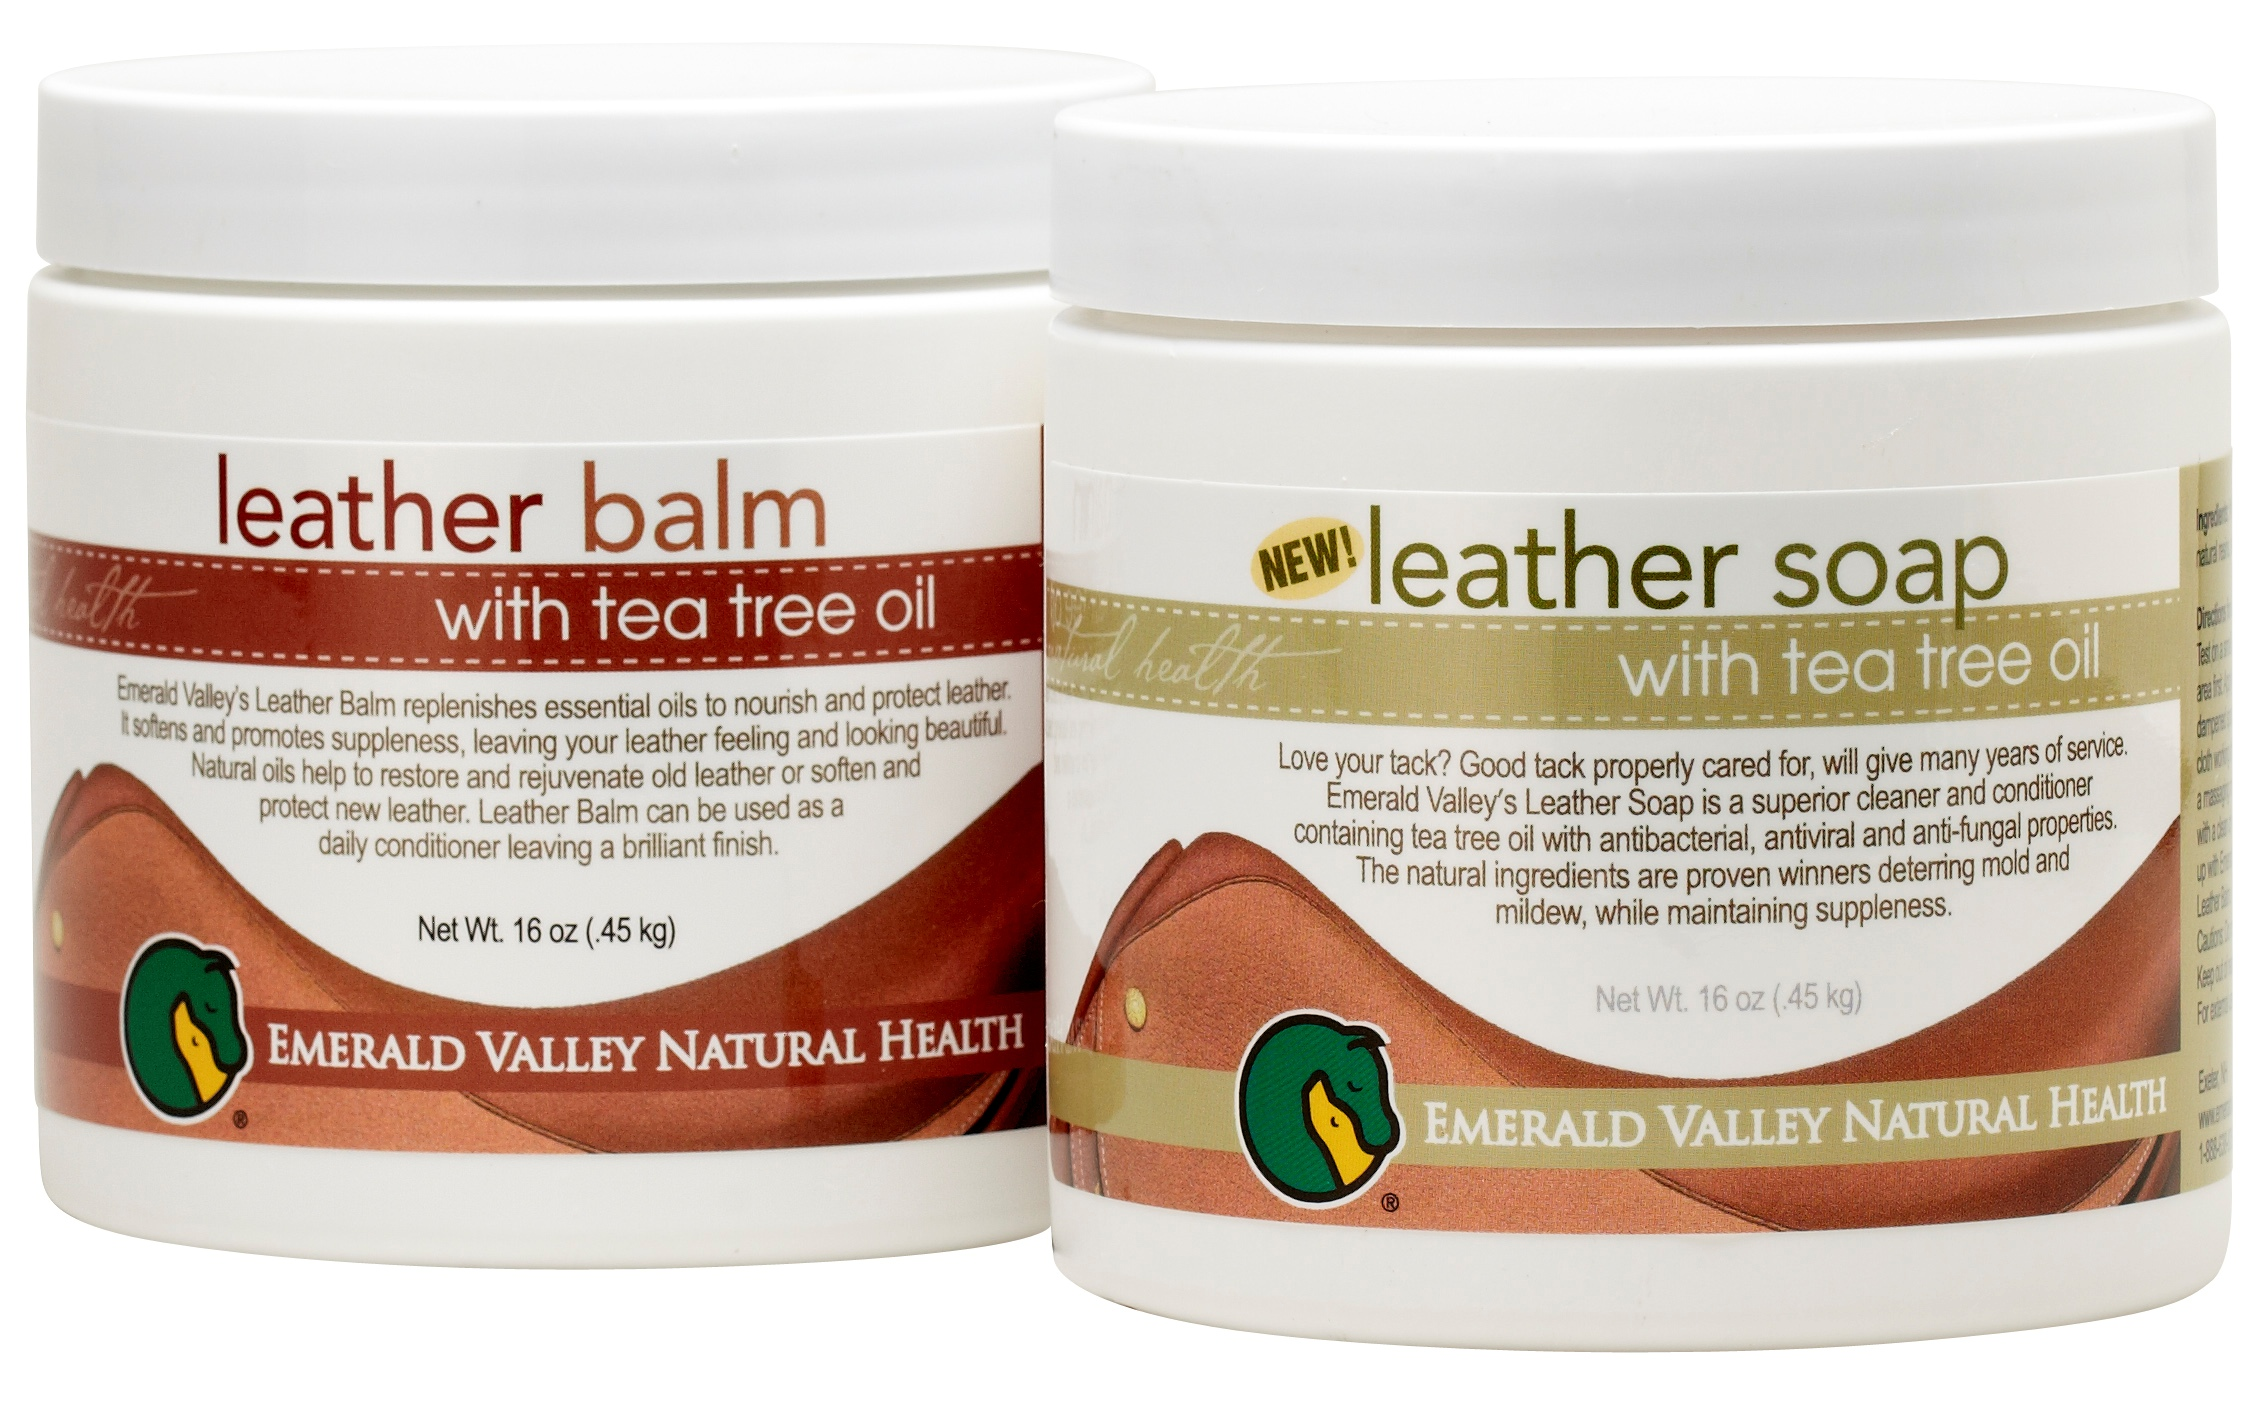 Deter Mold & Mildew! Emerald Valley Leather Soap and Leather Balm ...